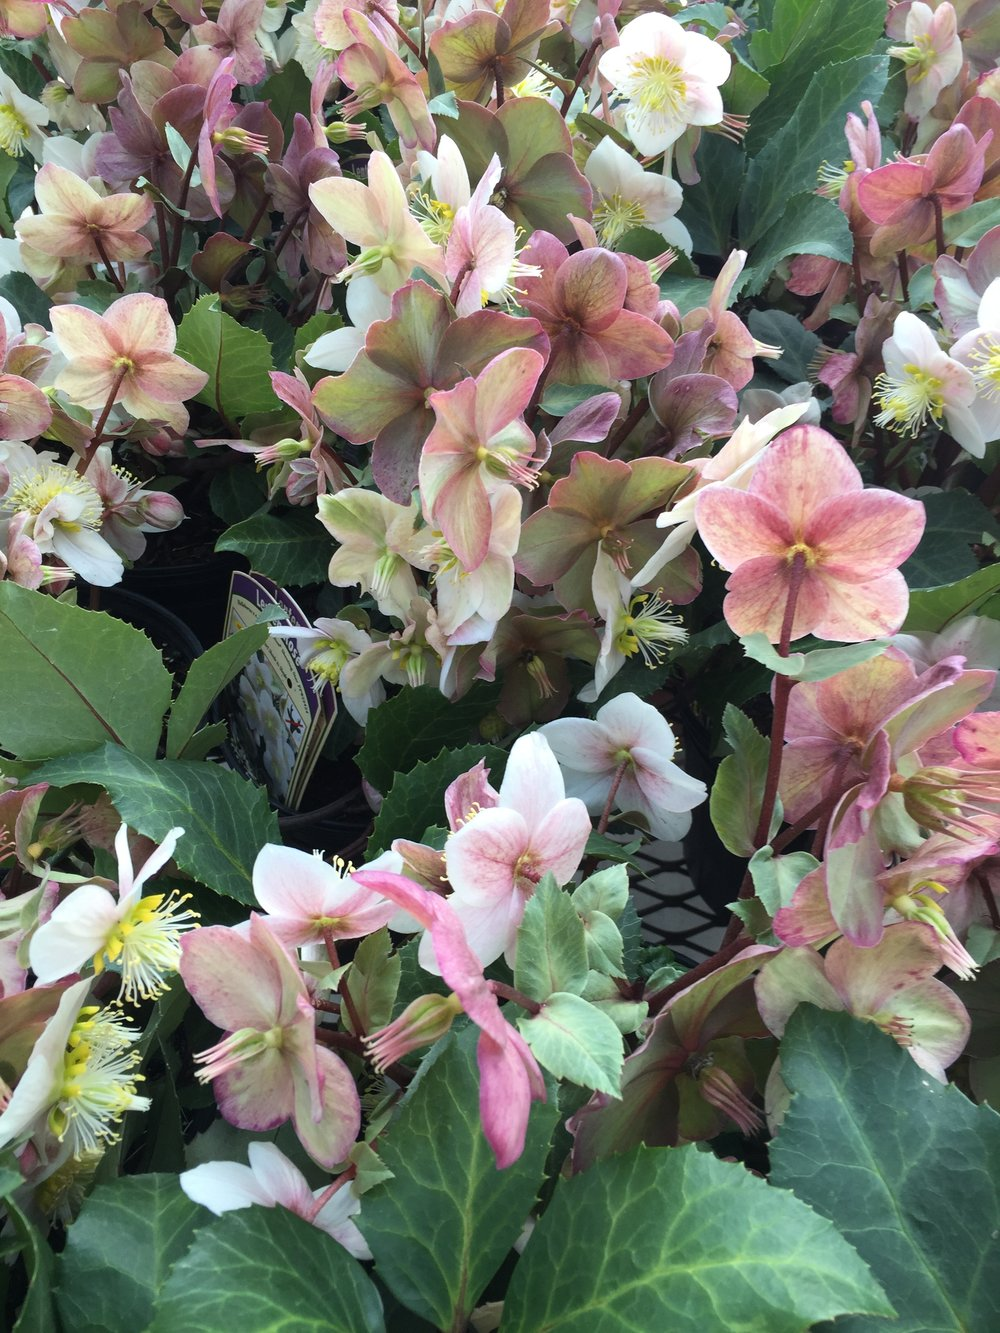 Hellebores are arriving at the store now. They're perfect for winter containers and the landscape. They love dry shade and start blooming late February to March. Don't forget to add this evergreen perennial to your garden.